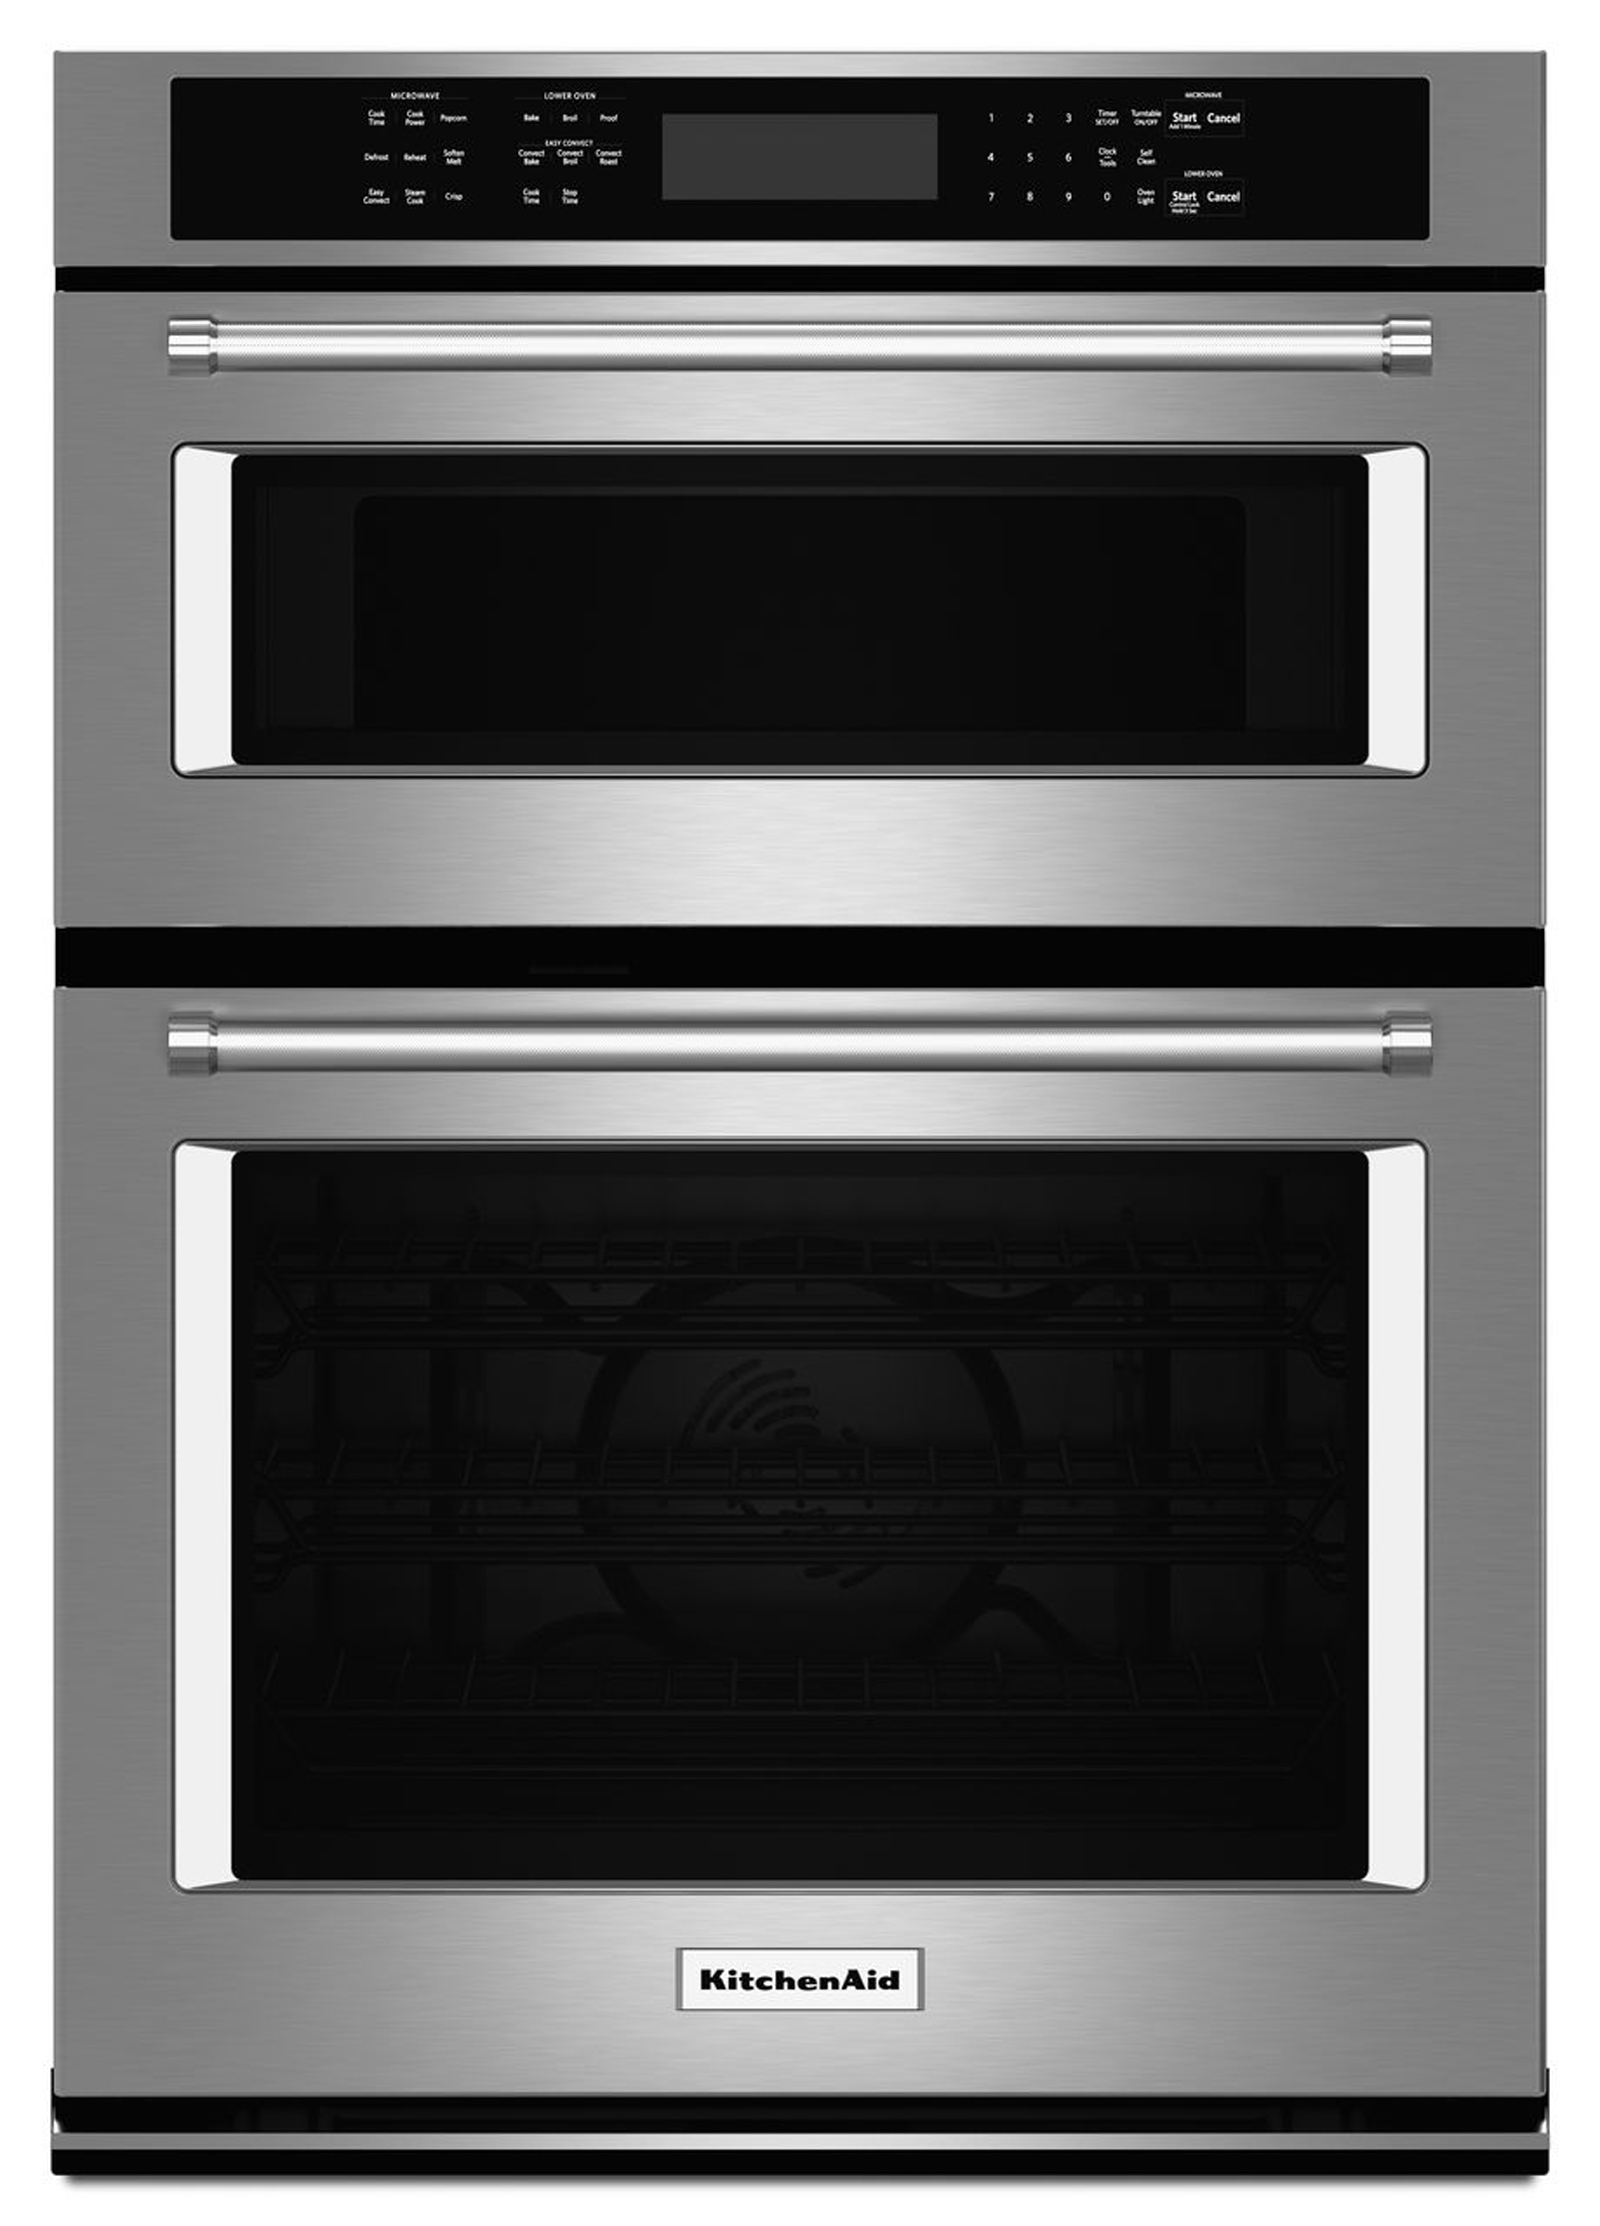 KitchenAid KOCE500ESS 30 Combination Wall Oven w/ Even-Heat™ True Convection - Stainless Steel